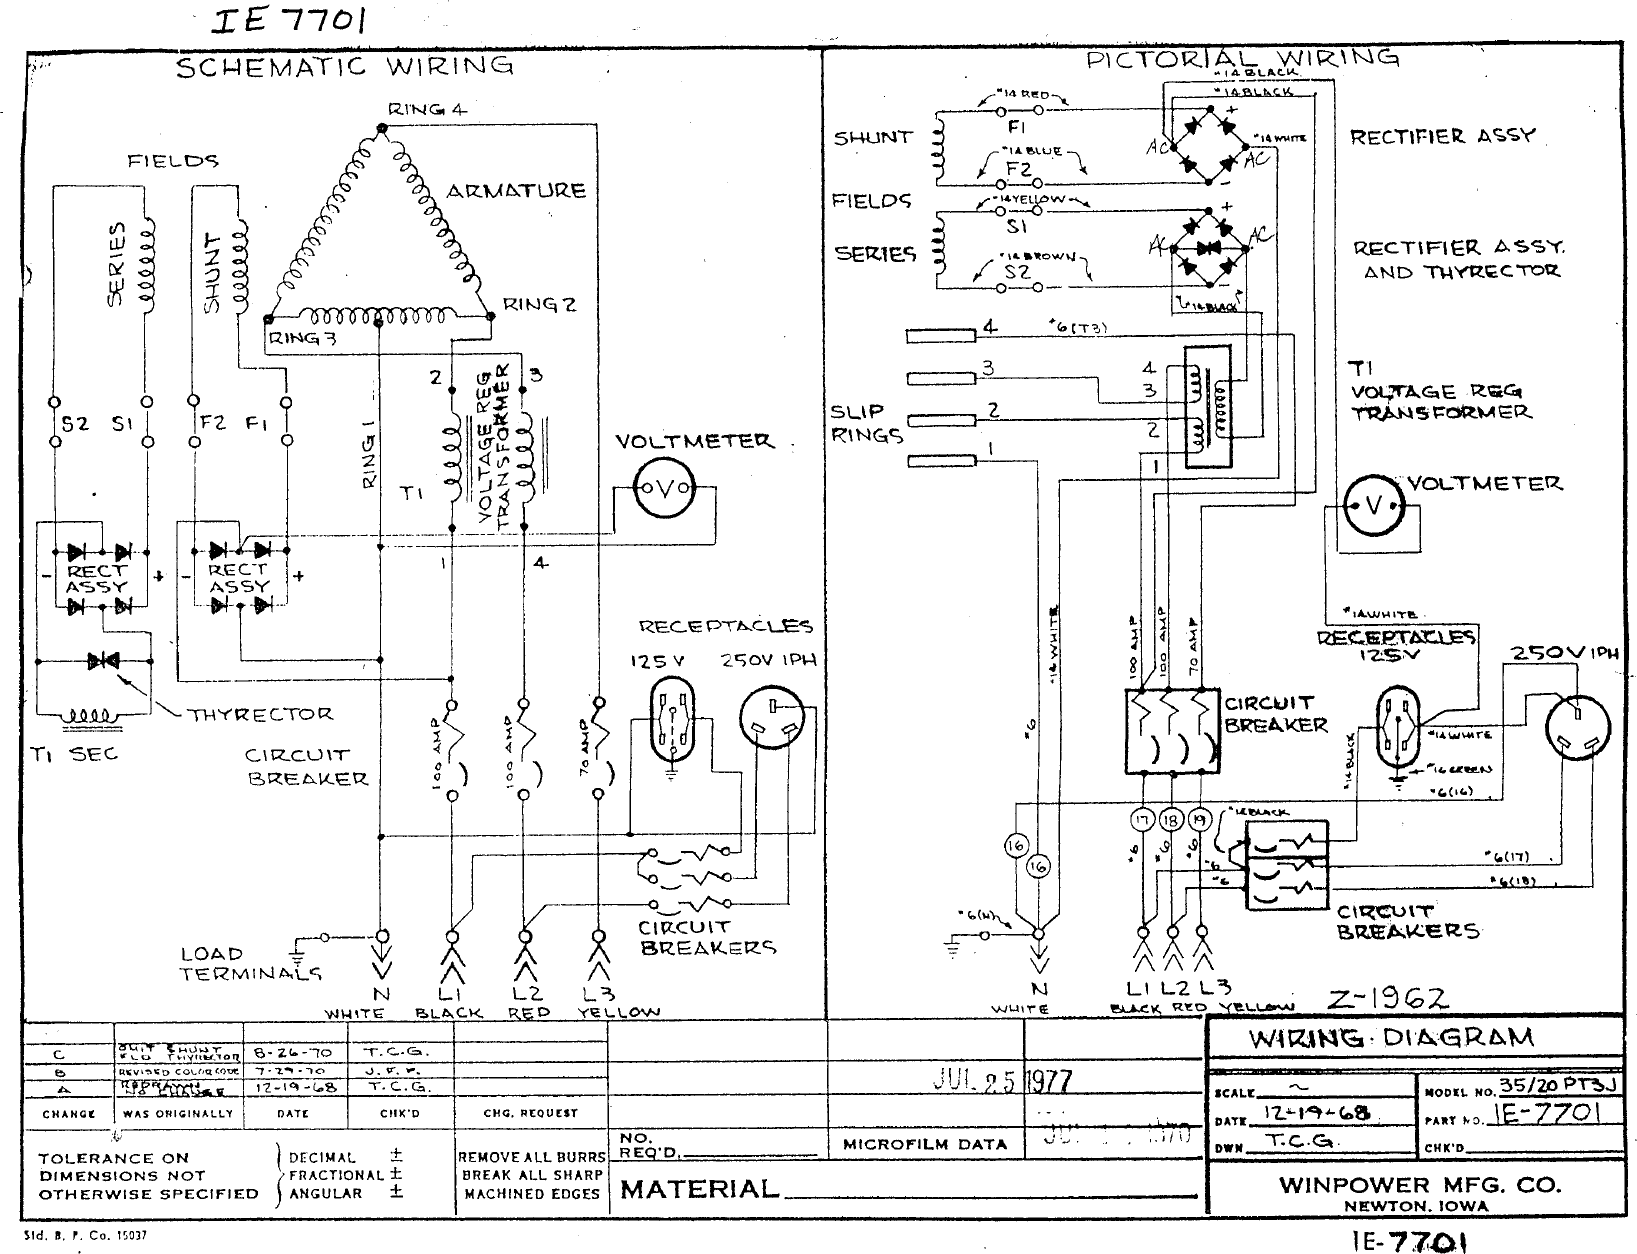 wiring 20 250v schematic full page fax print winpower 35 20 pt3j parts list wiring diagram  full page fax print winpower 35